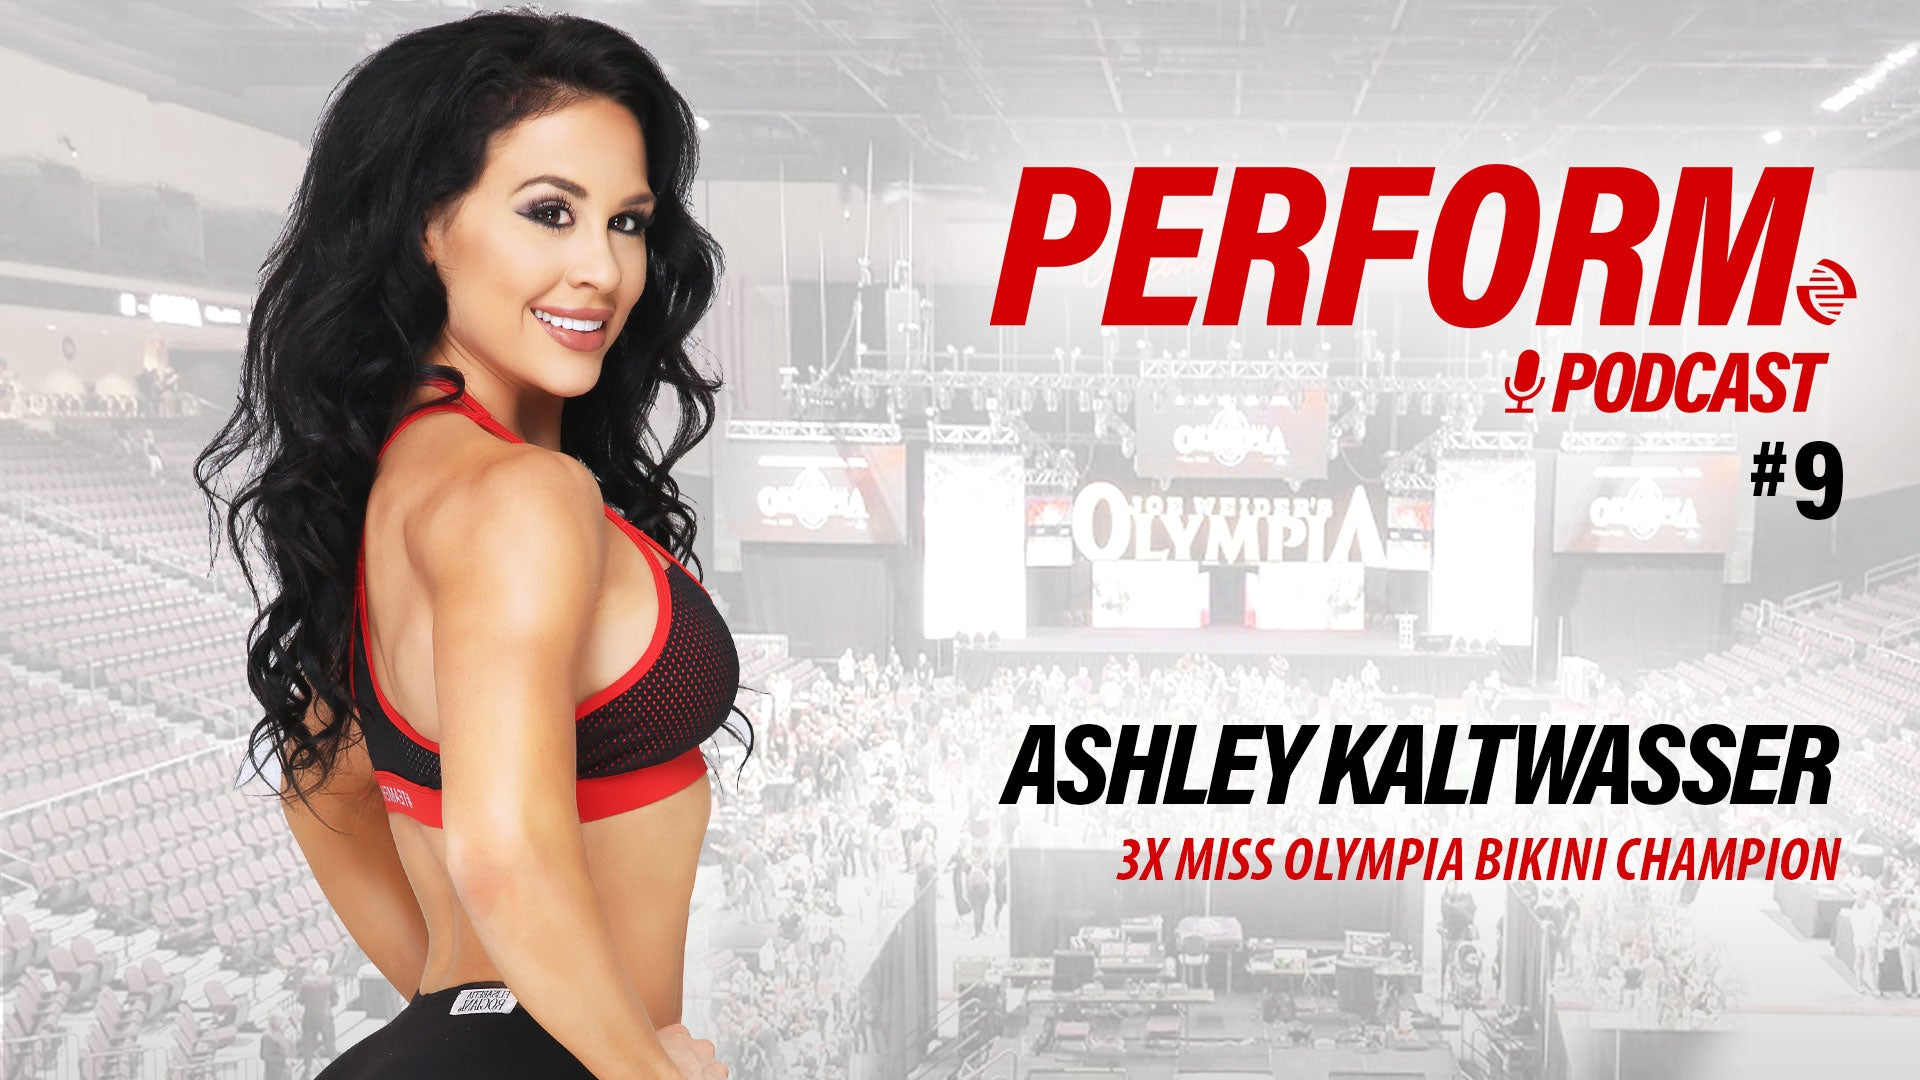 Perform Podcast Episode 009 - Ashley Kaltwasser